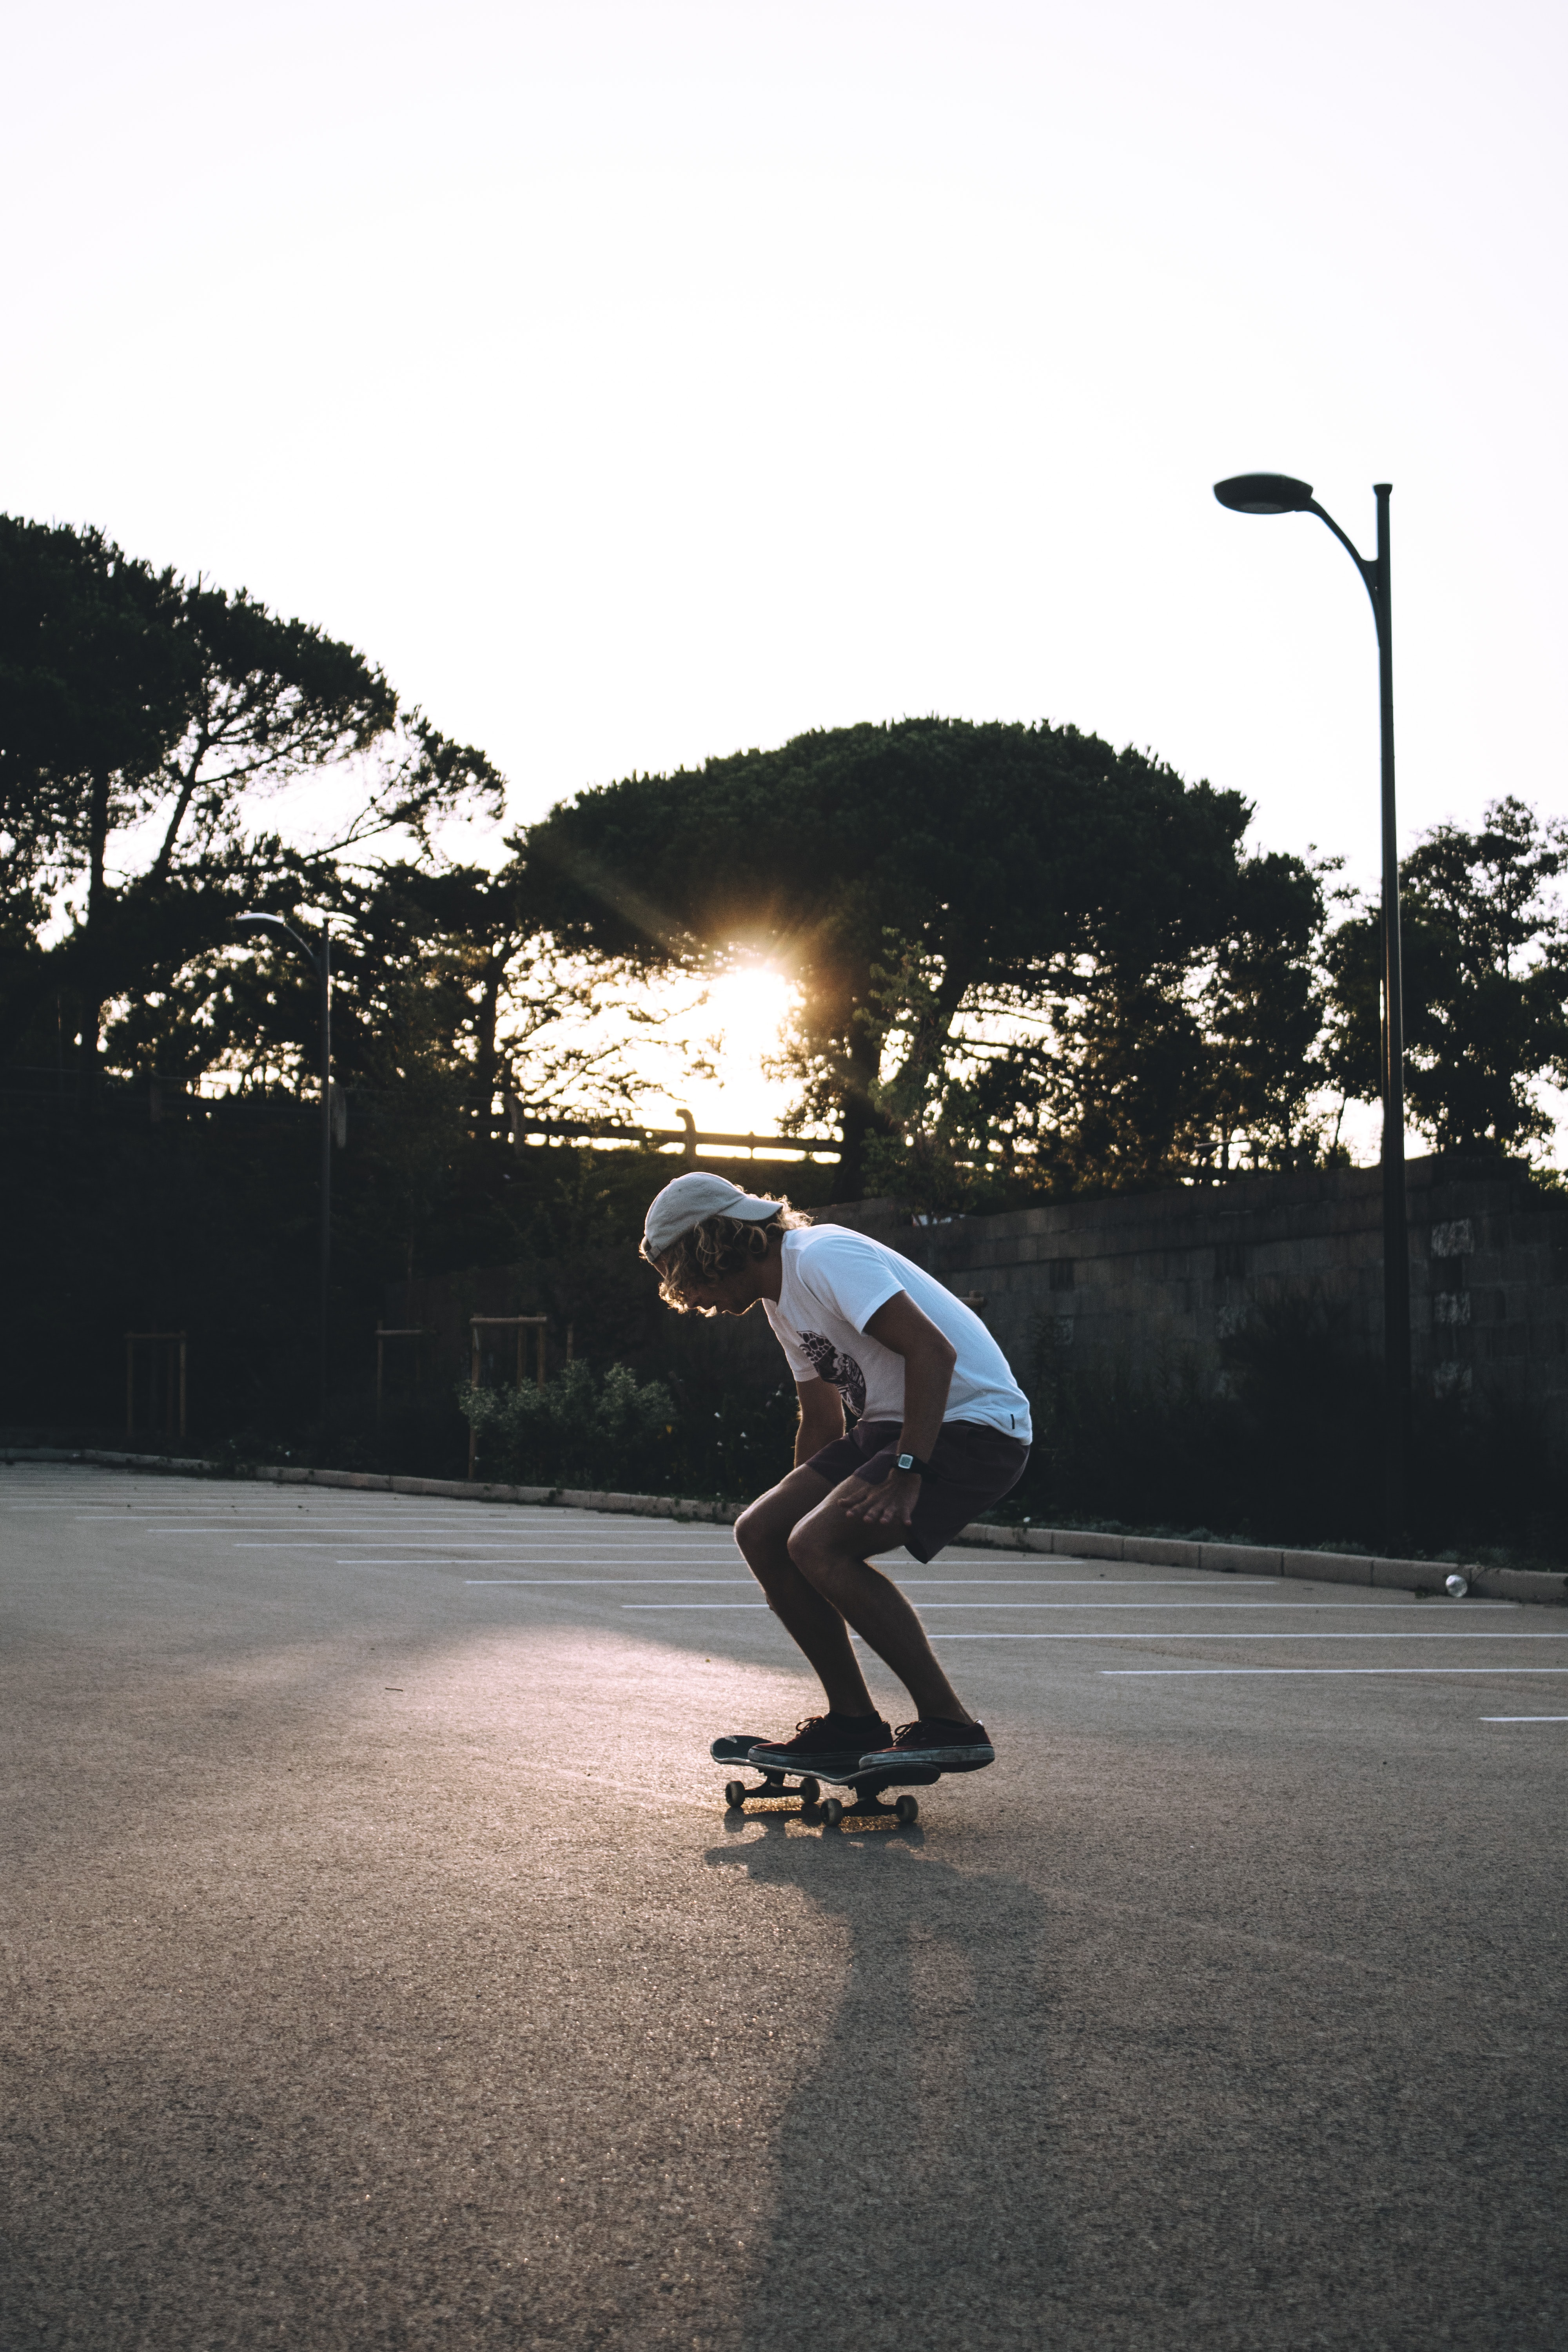 man riding skateboard at the middle of the empty road